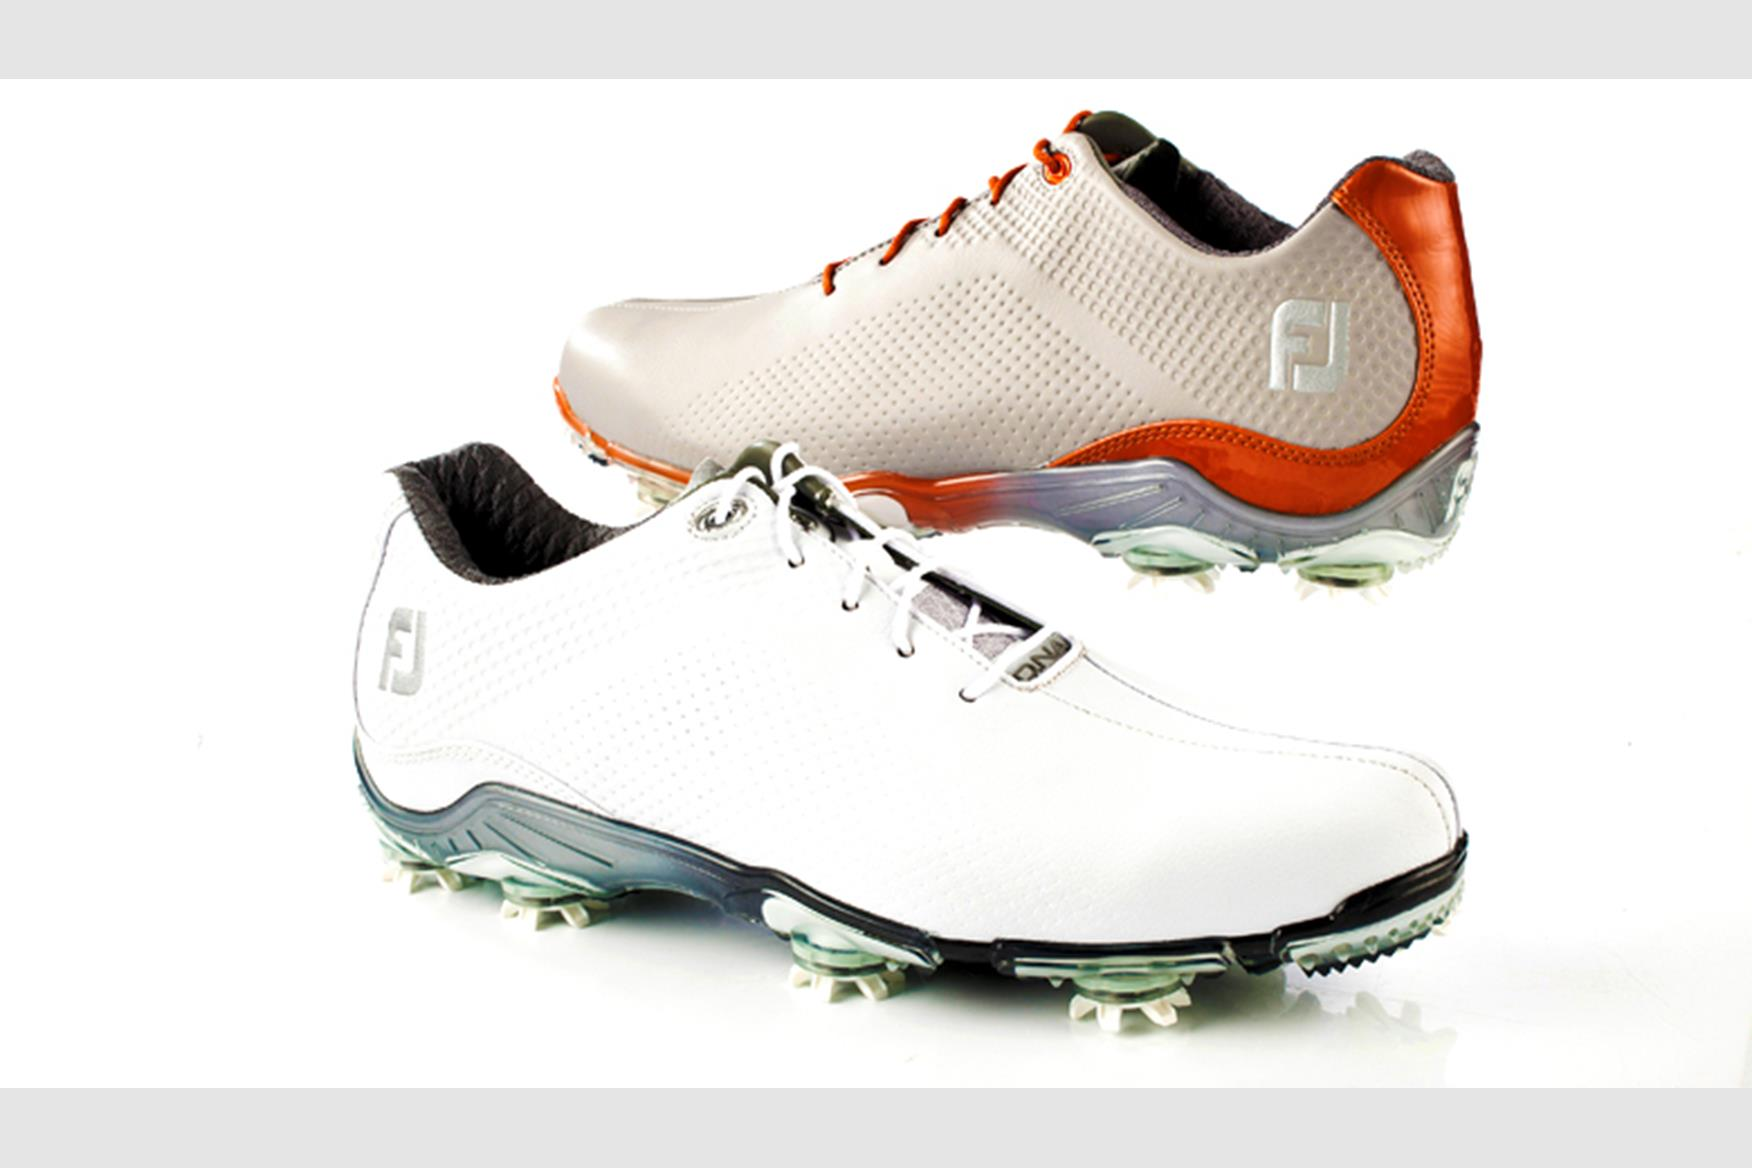 New Footjoy Dna Shoes